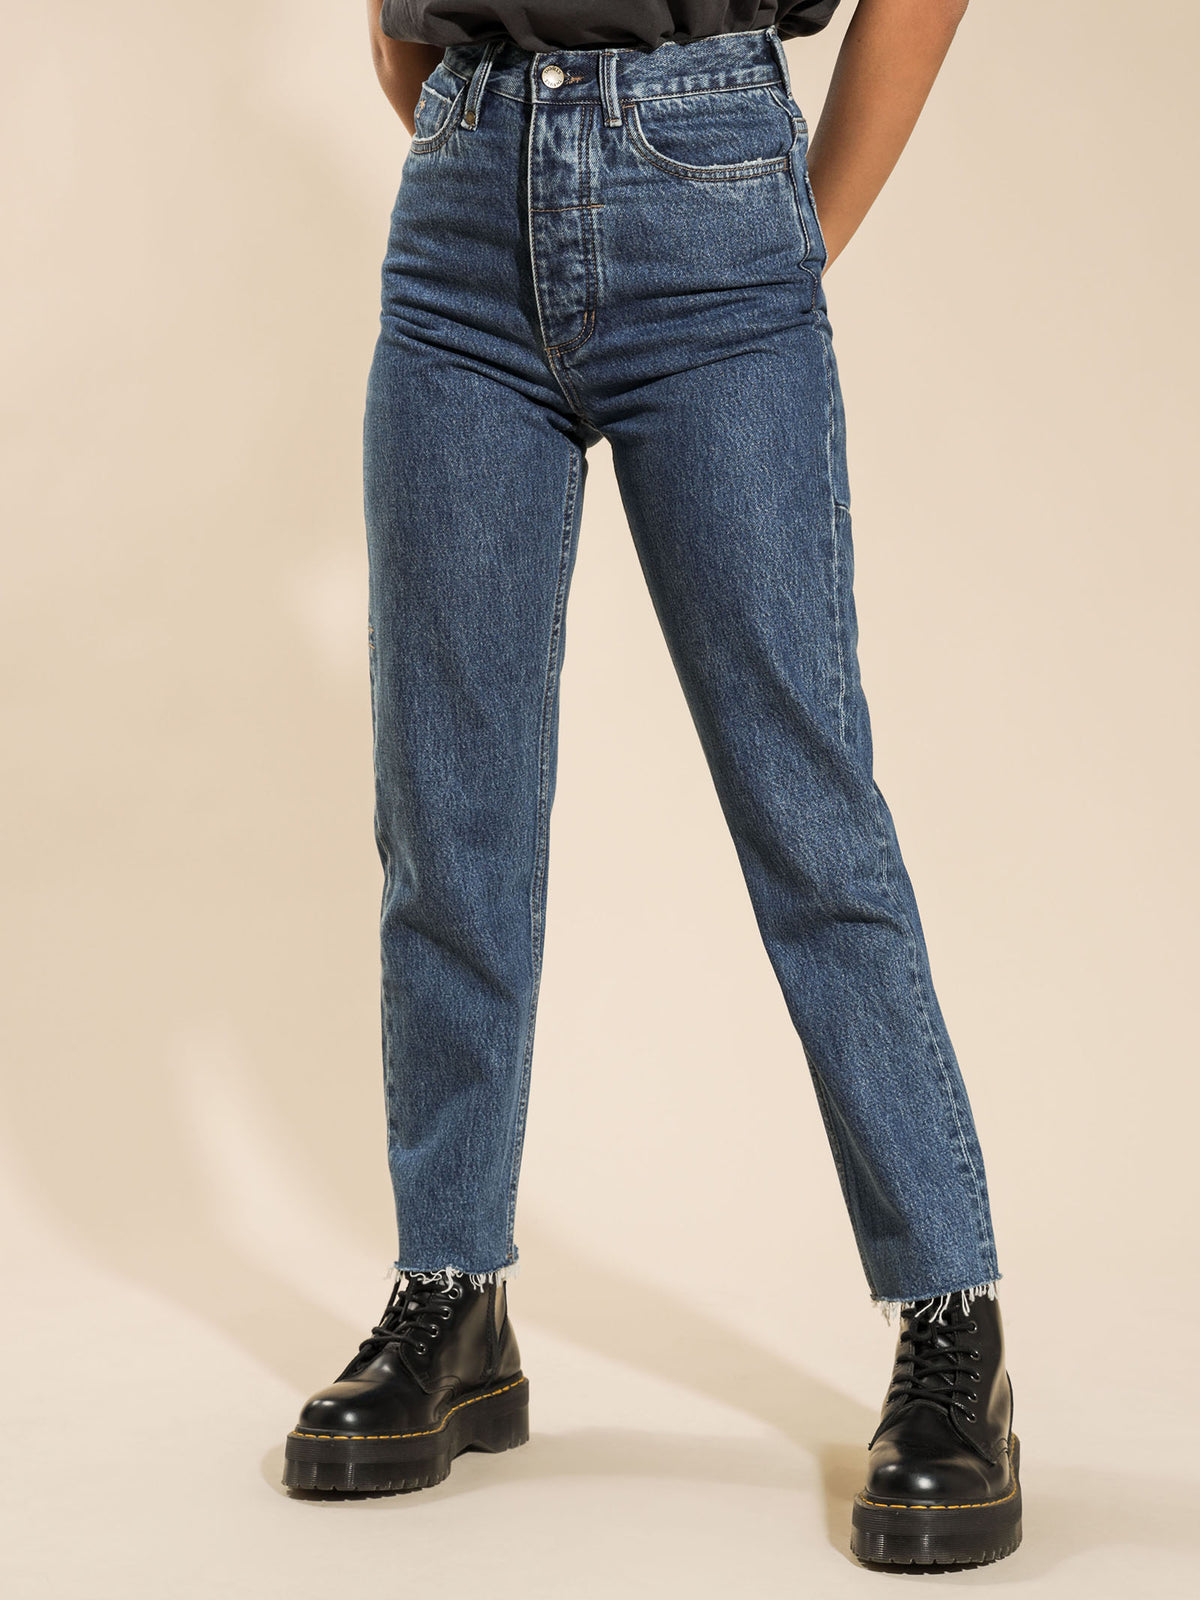 Paige Jeans in Blue Rinse